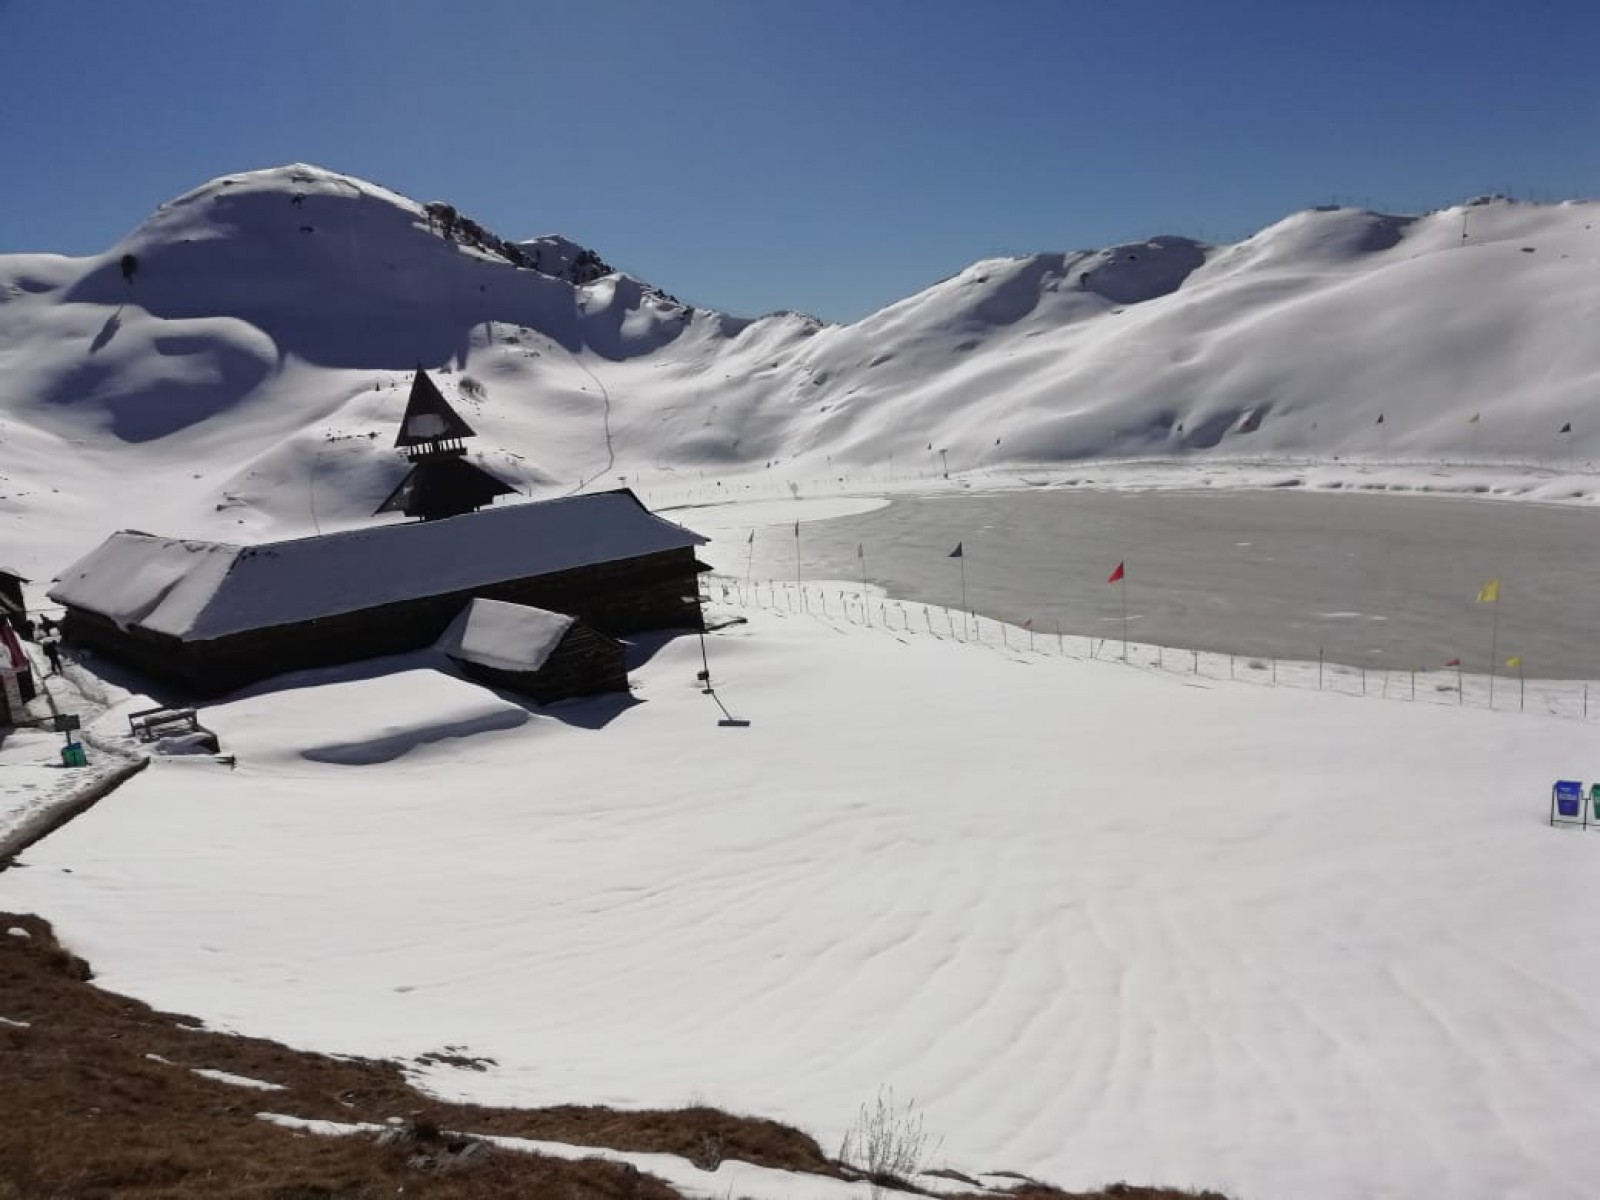 http://m.thegreatnext.com/Parashar Lake Trek Himachal Pradesh Snow Adventure Travel The Great Next